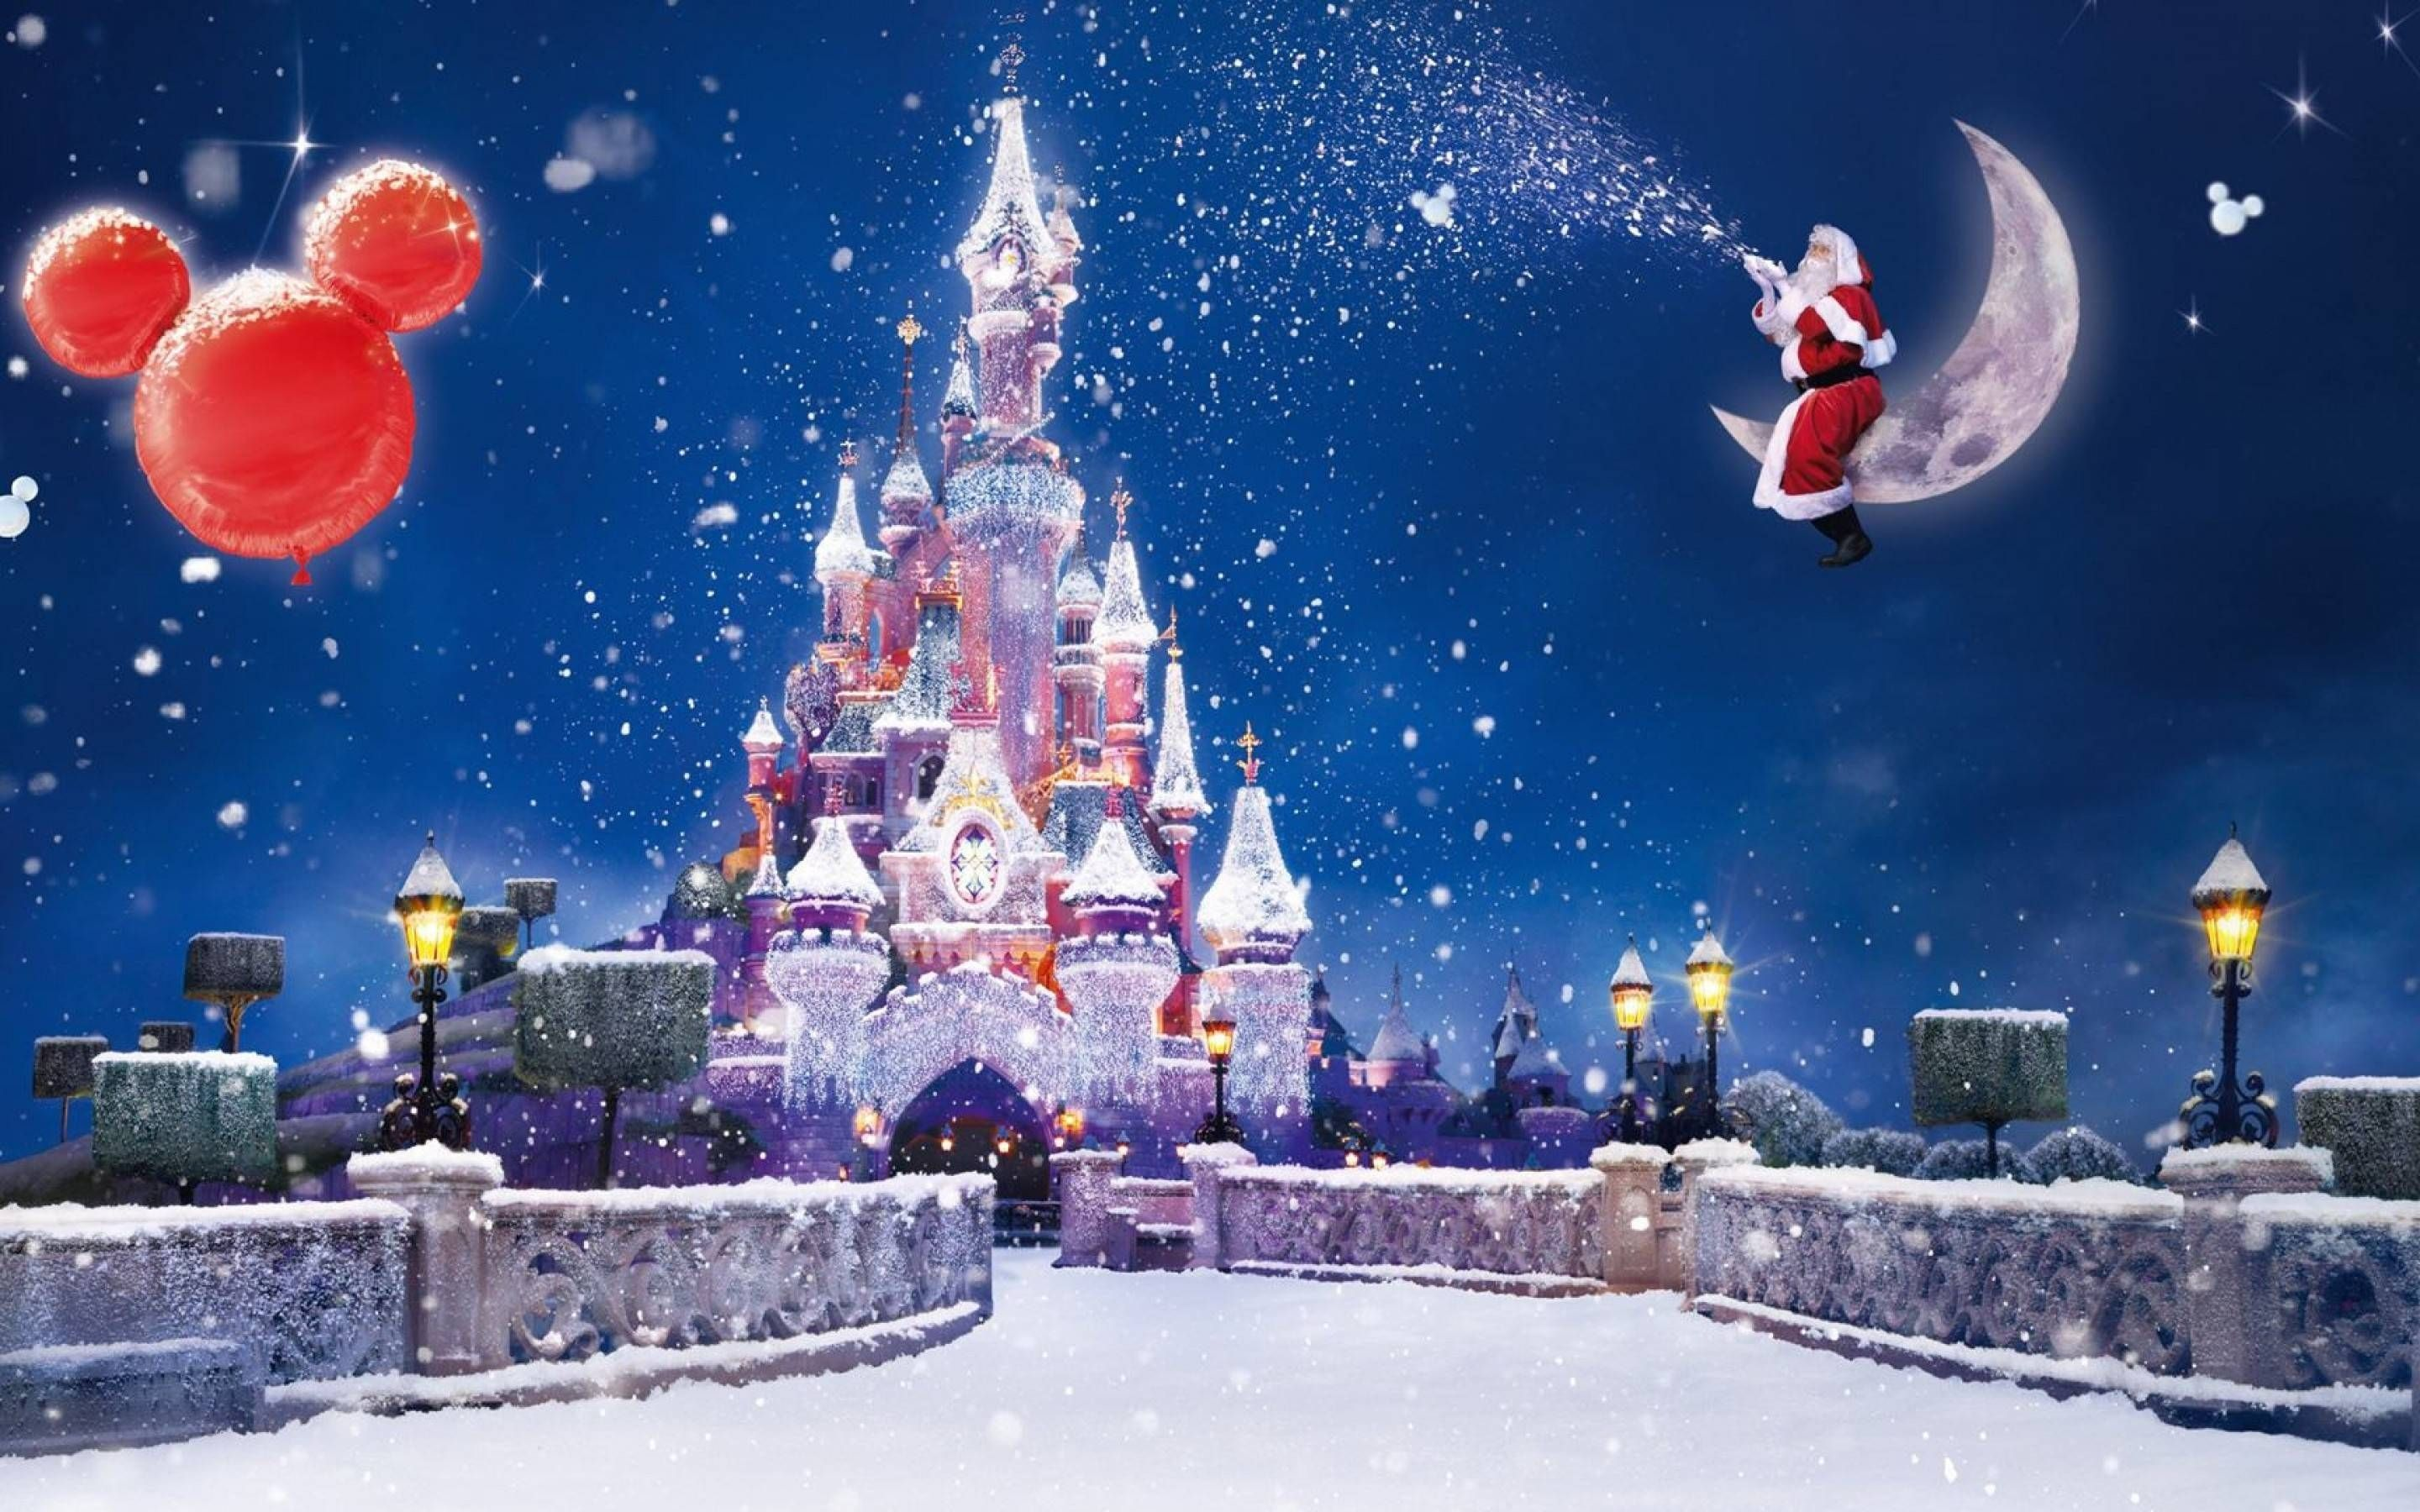 11 Things To Avoid In Christmas Pc Wallpaper Christmas Pc Wallpaper Christmas Desktop Wallpaper Christmas Desktop Winter Wallpaper